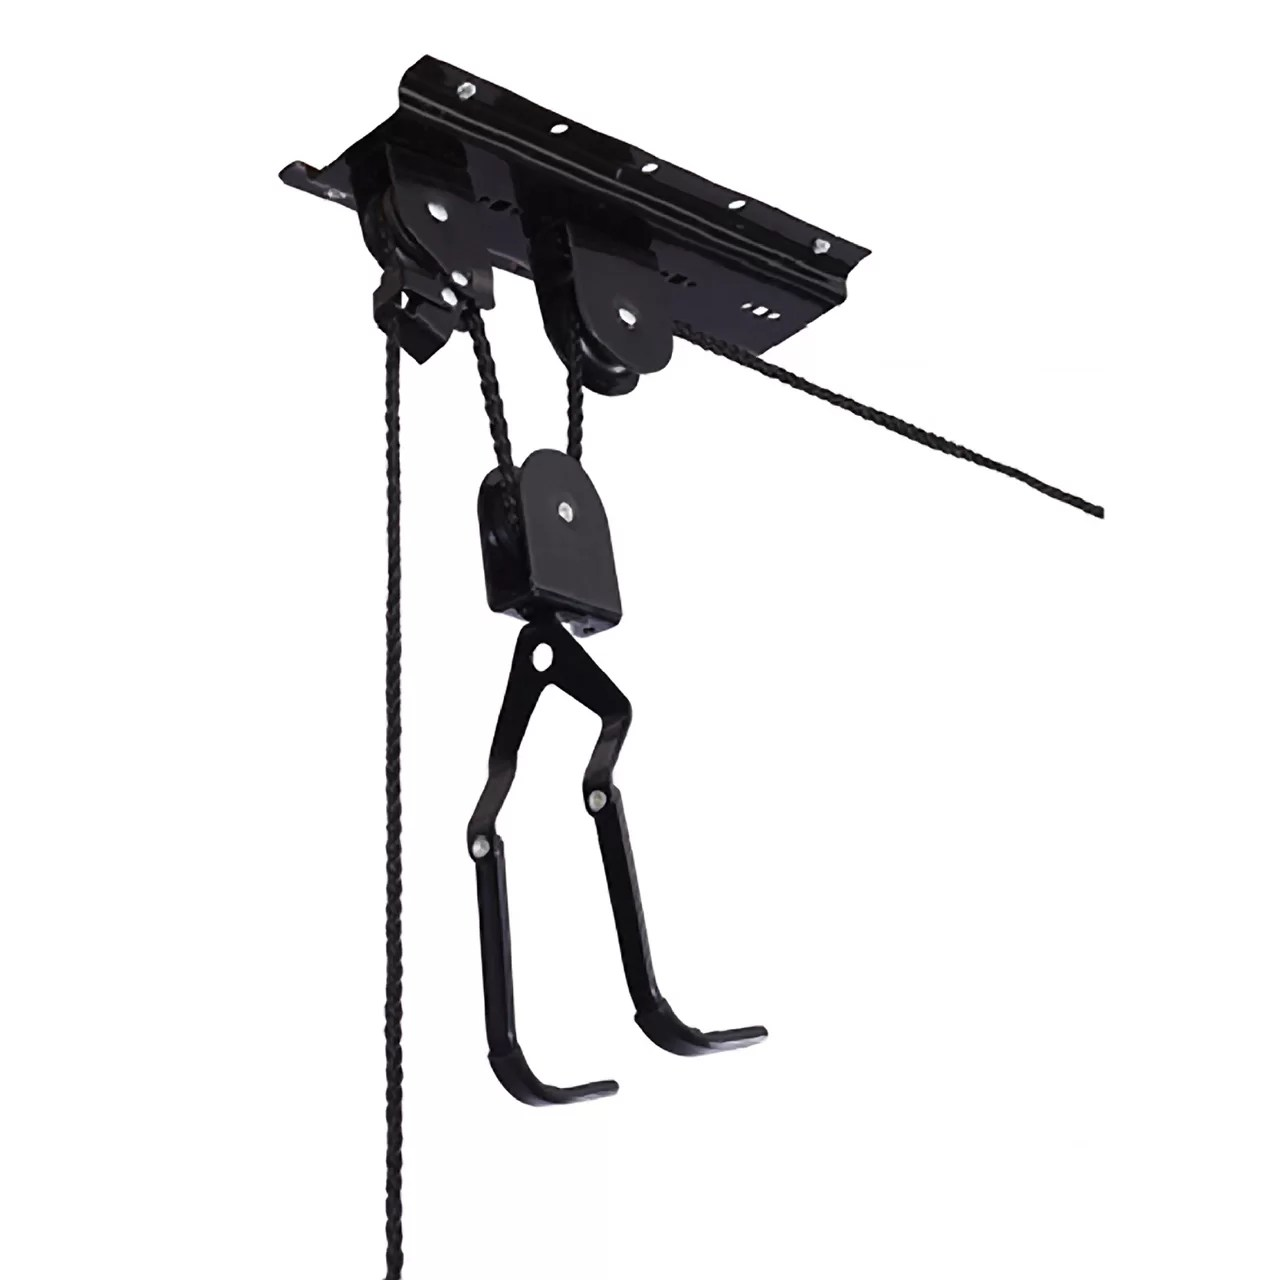 Rad Cycle Products Garage Mountain Bicycle Hoist Ceiling